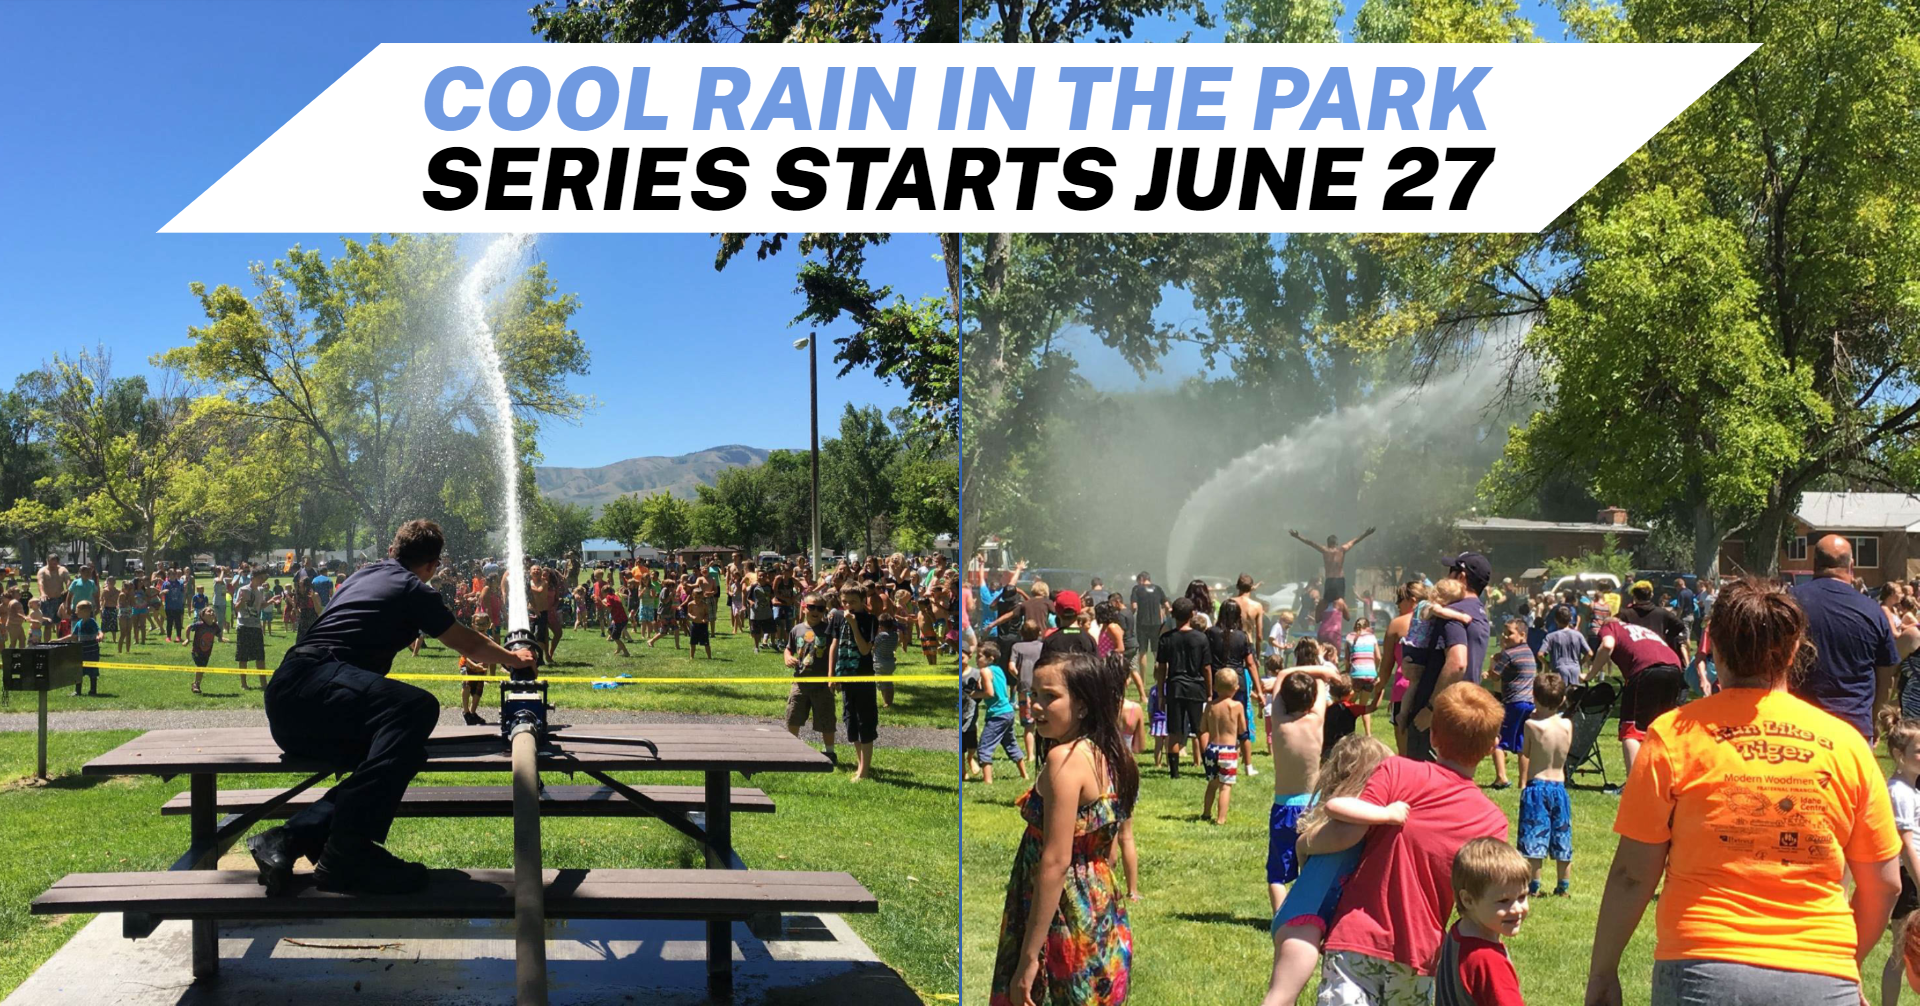 A Cool Rain event at Caldwell Park.